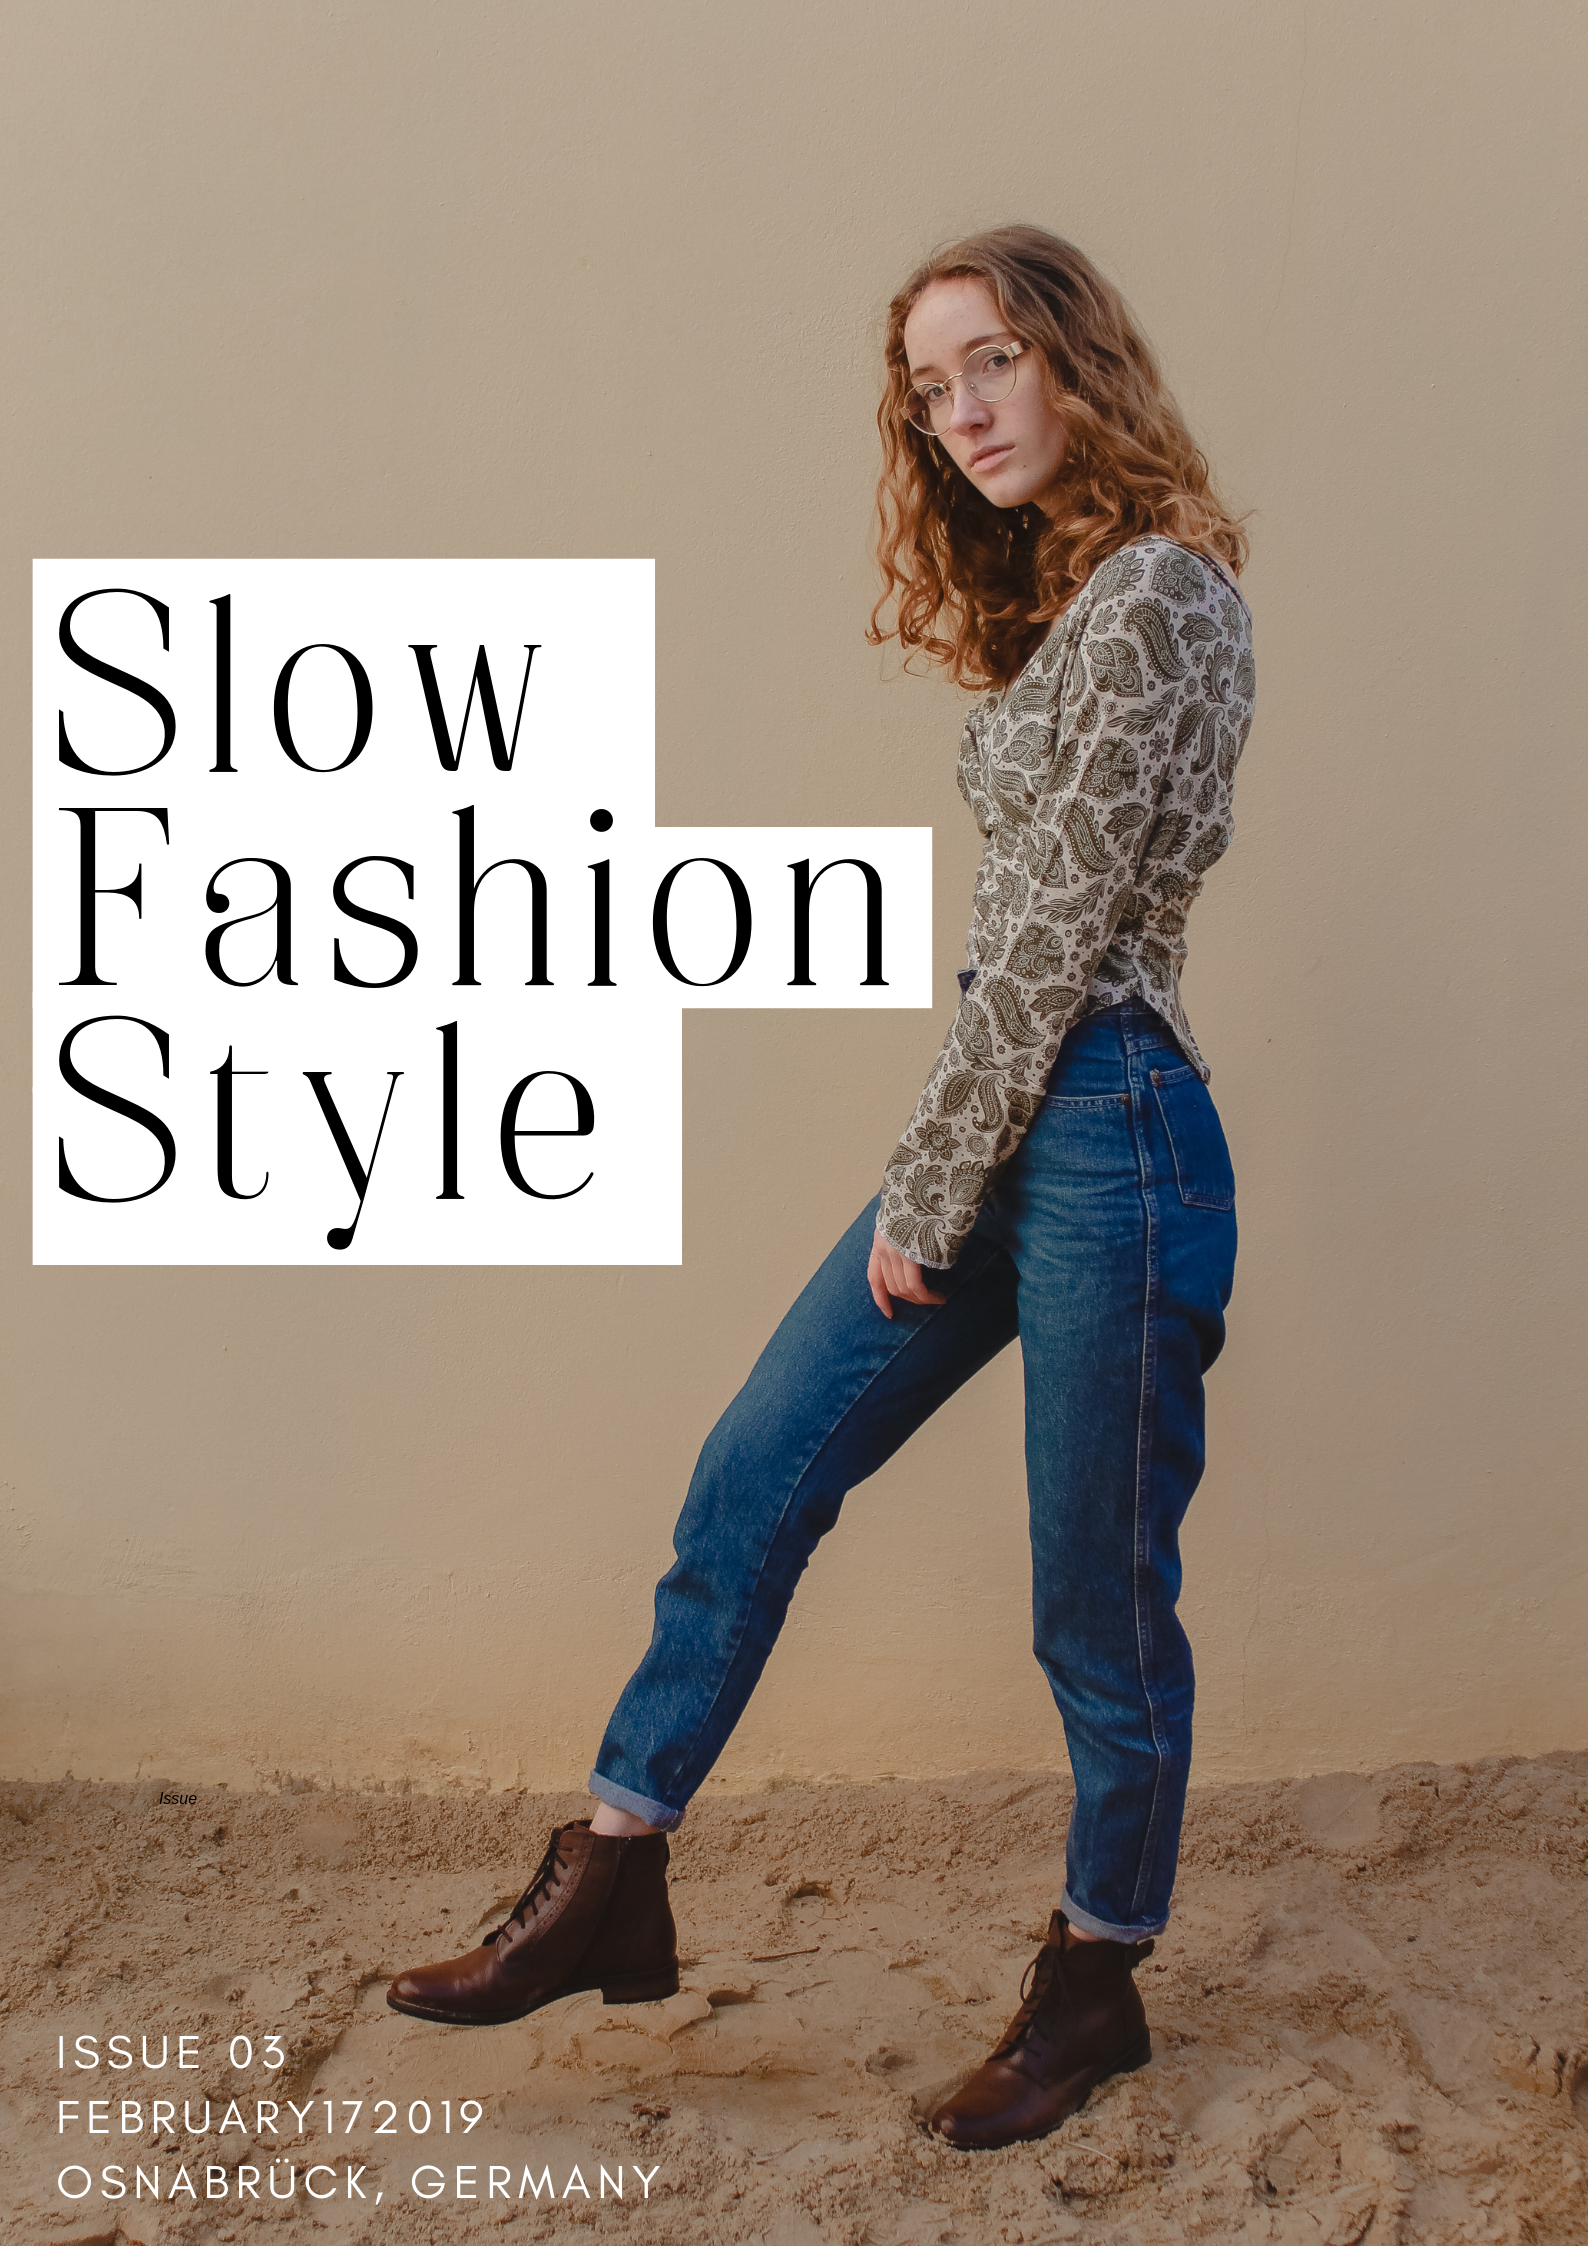 Slow Fashion Style by @lena.naeht photograhed by www.herprettybravesoul.com, slow fashion, jeans, yellow background, fashion, editorial